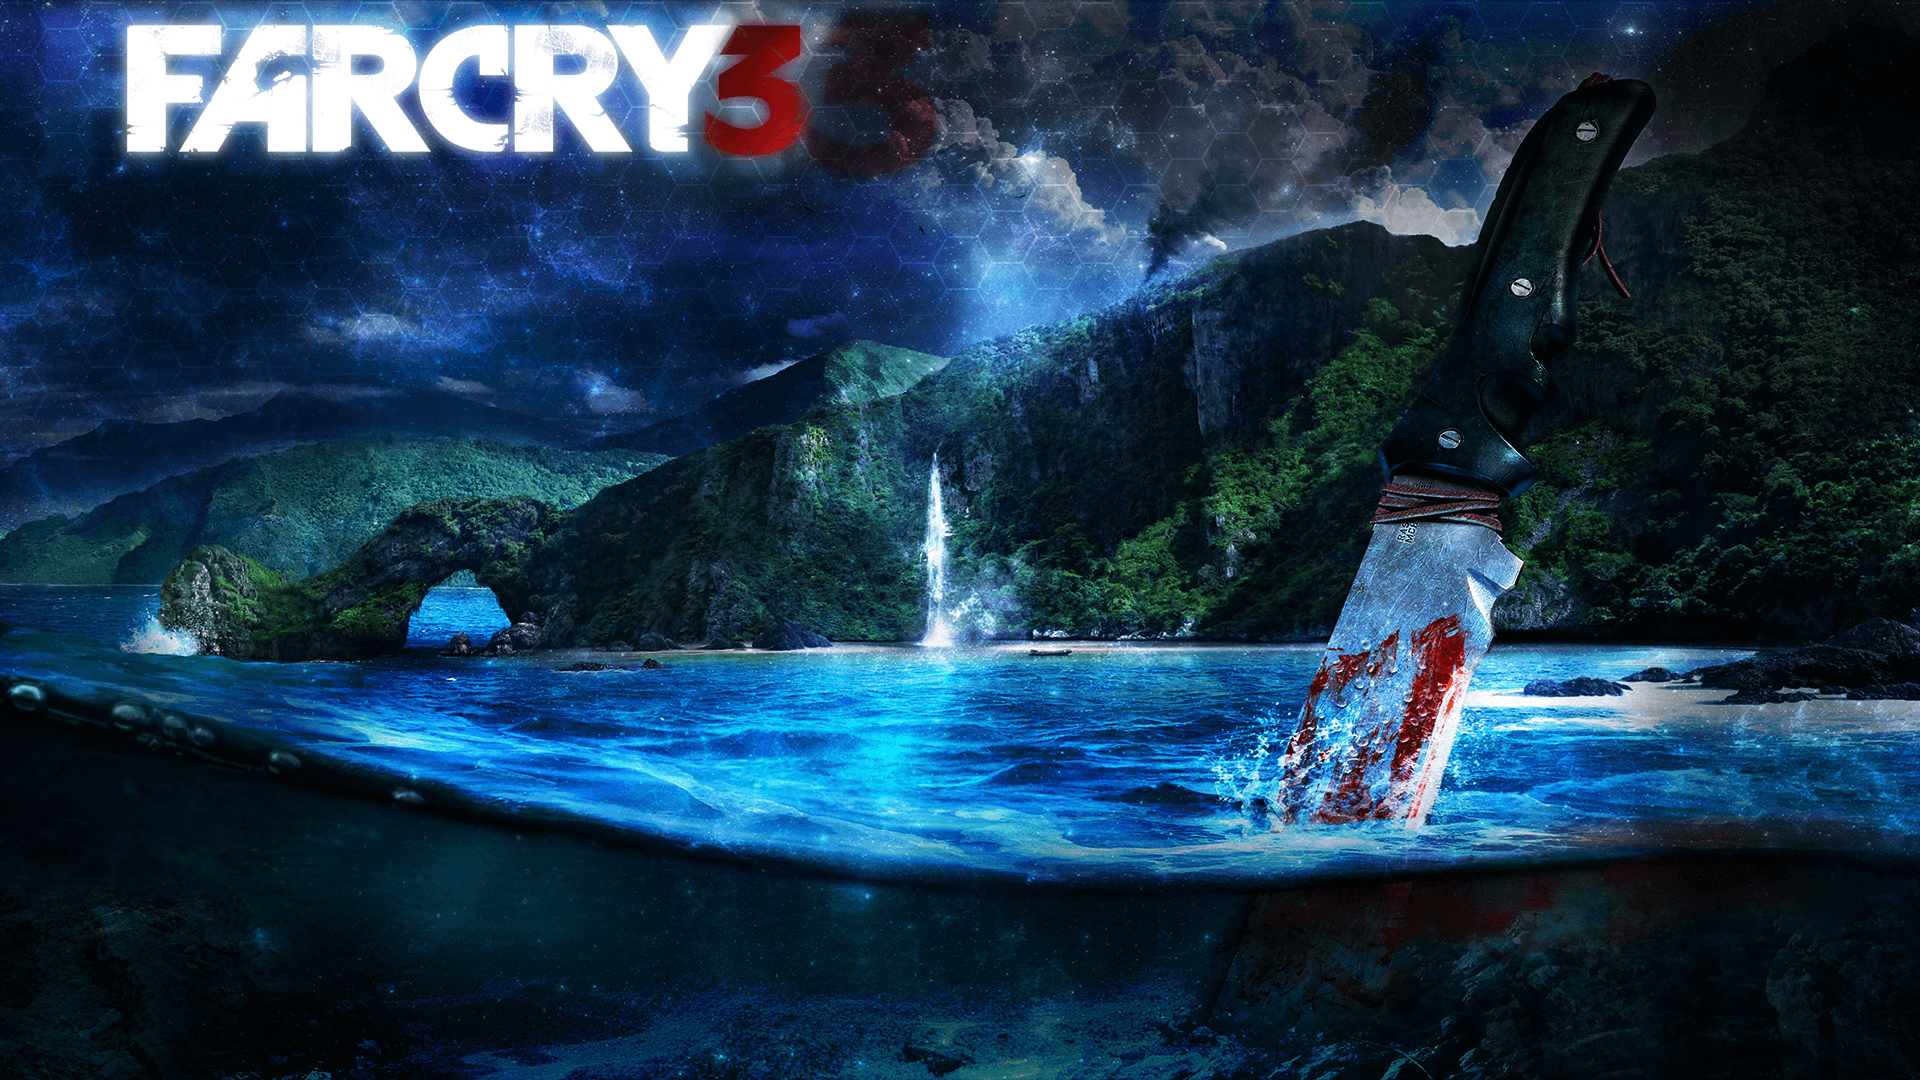 Far Cry 3 Wallpapers Wallpapers 2020 Check More At Https